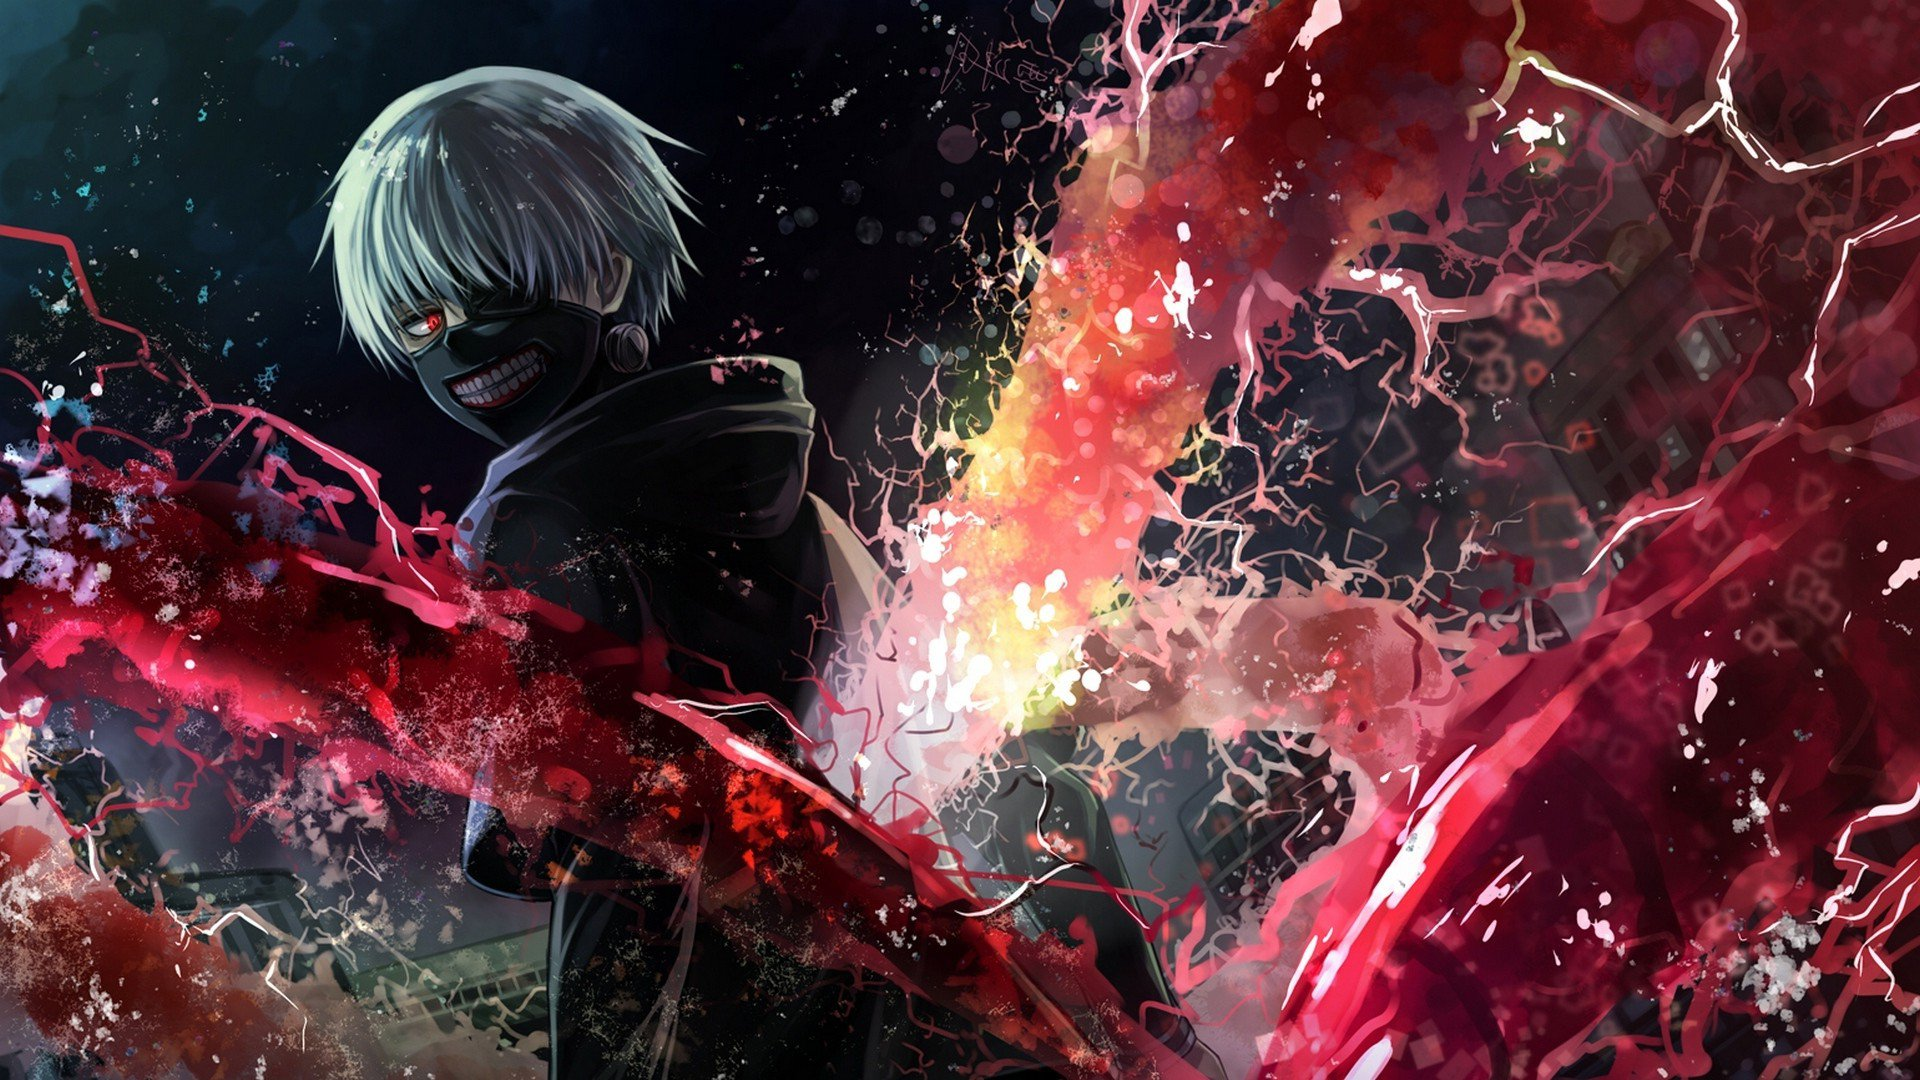 Tokyo Ghoul Art, HD Anime, 4k Wallpapers, Images, Backgrounds, Photos and Pictures